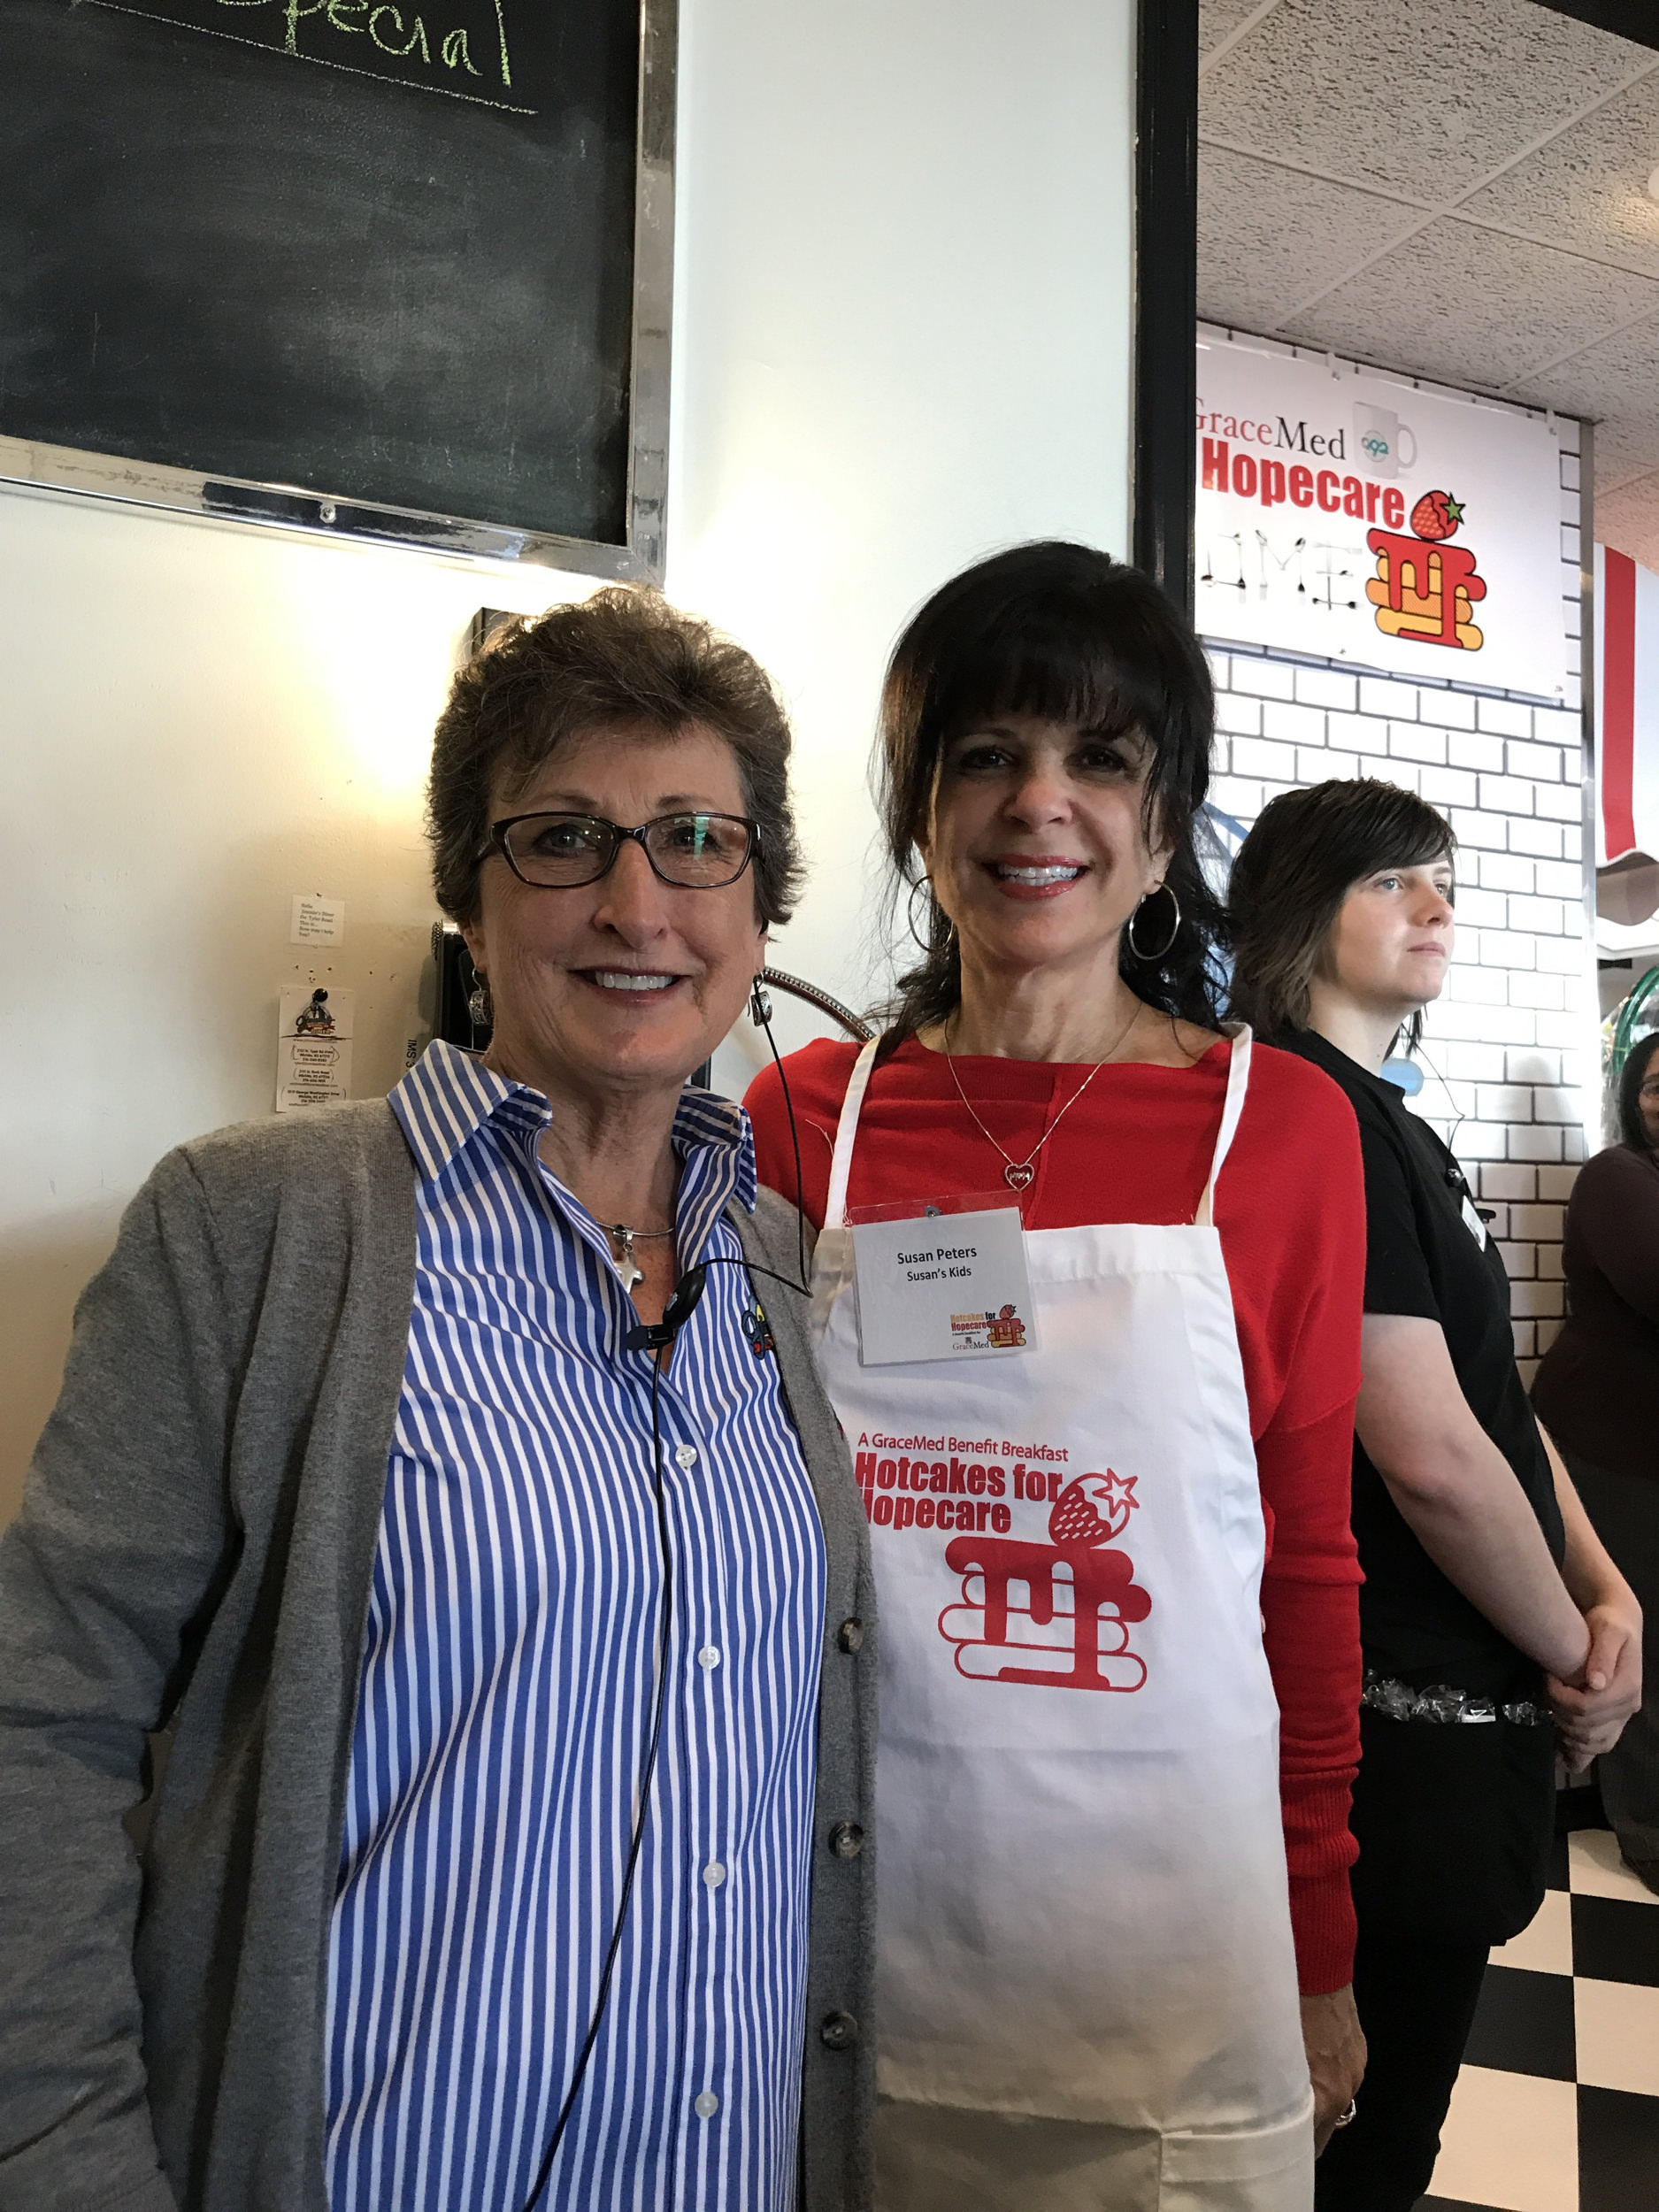 Linda Davidson, owner of Jimmie's Diner, with Susan Peters